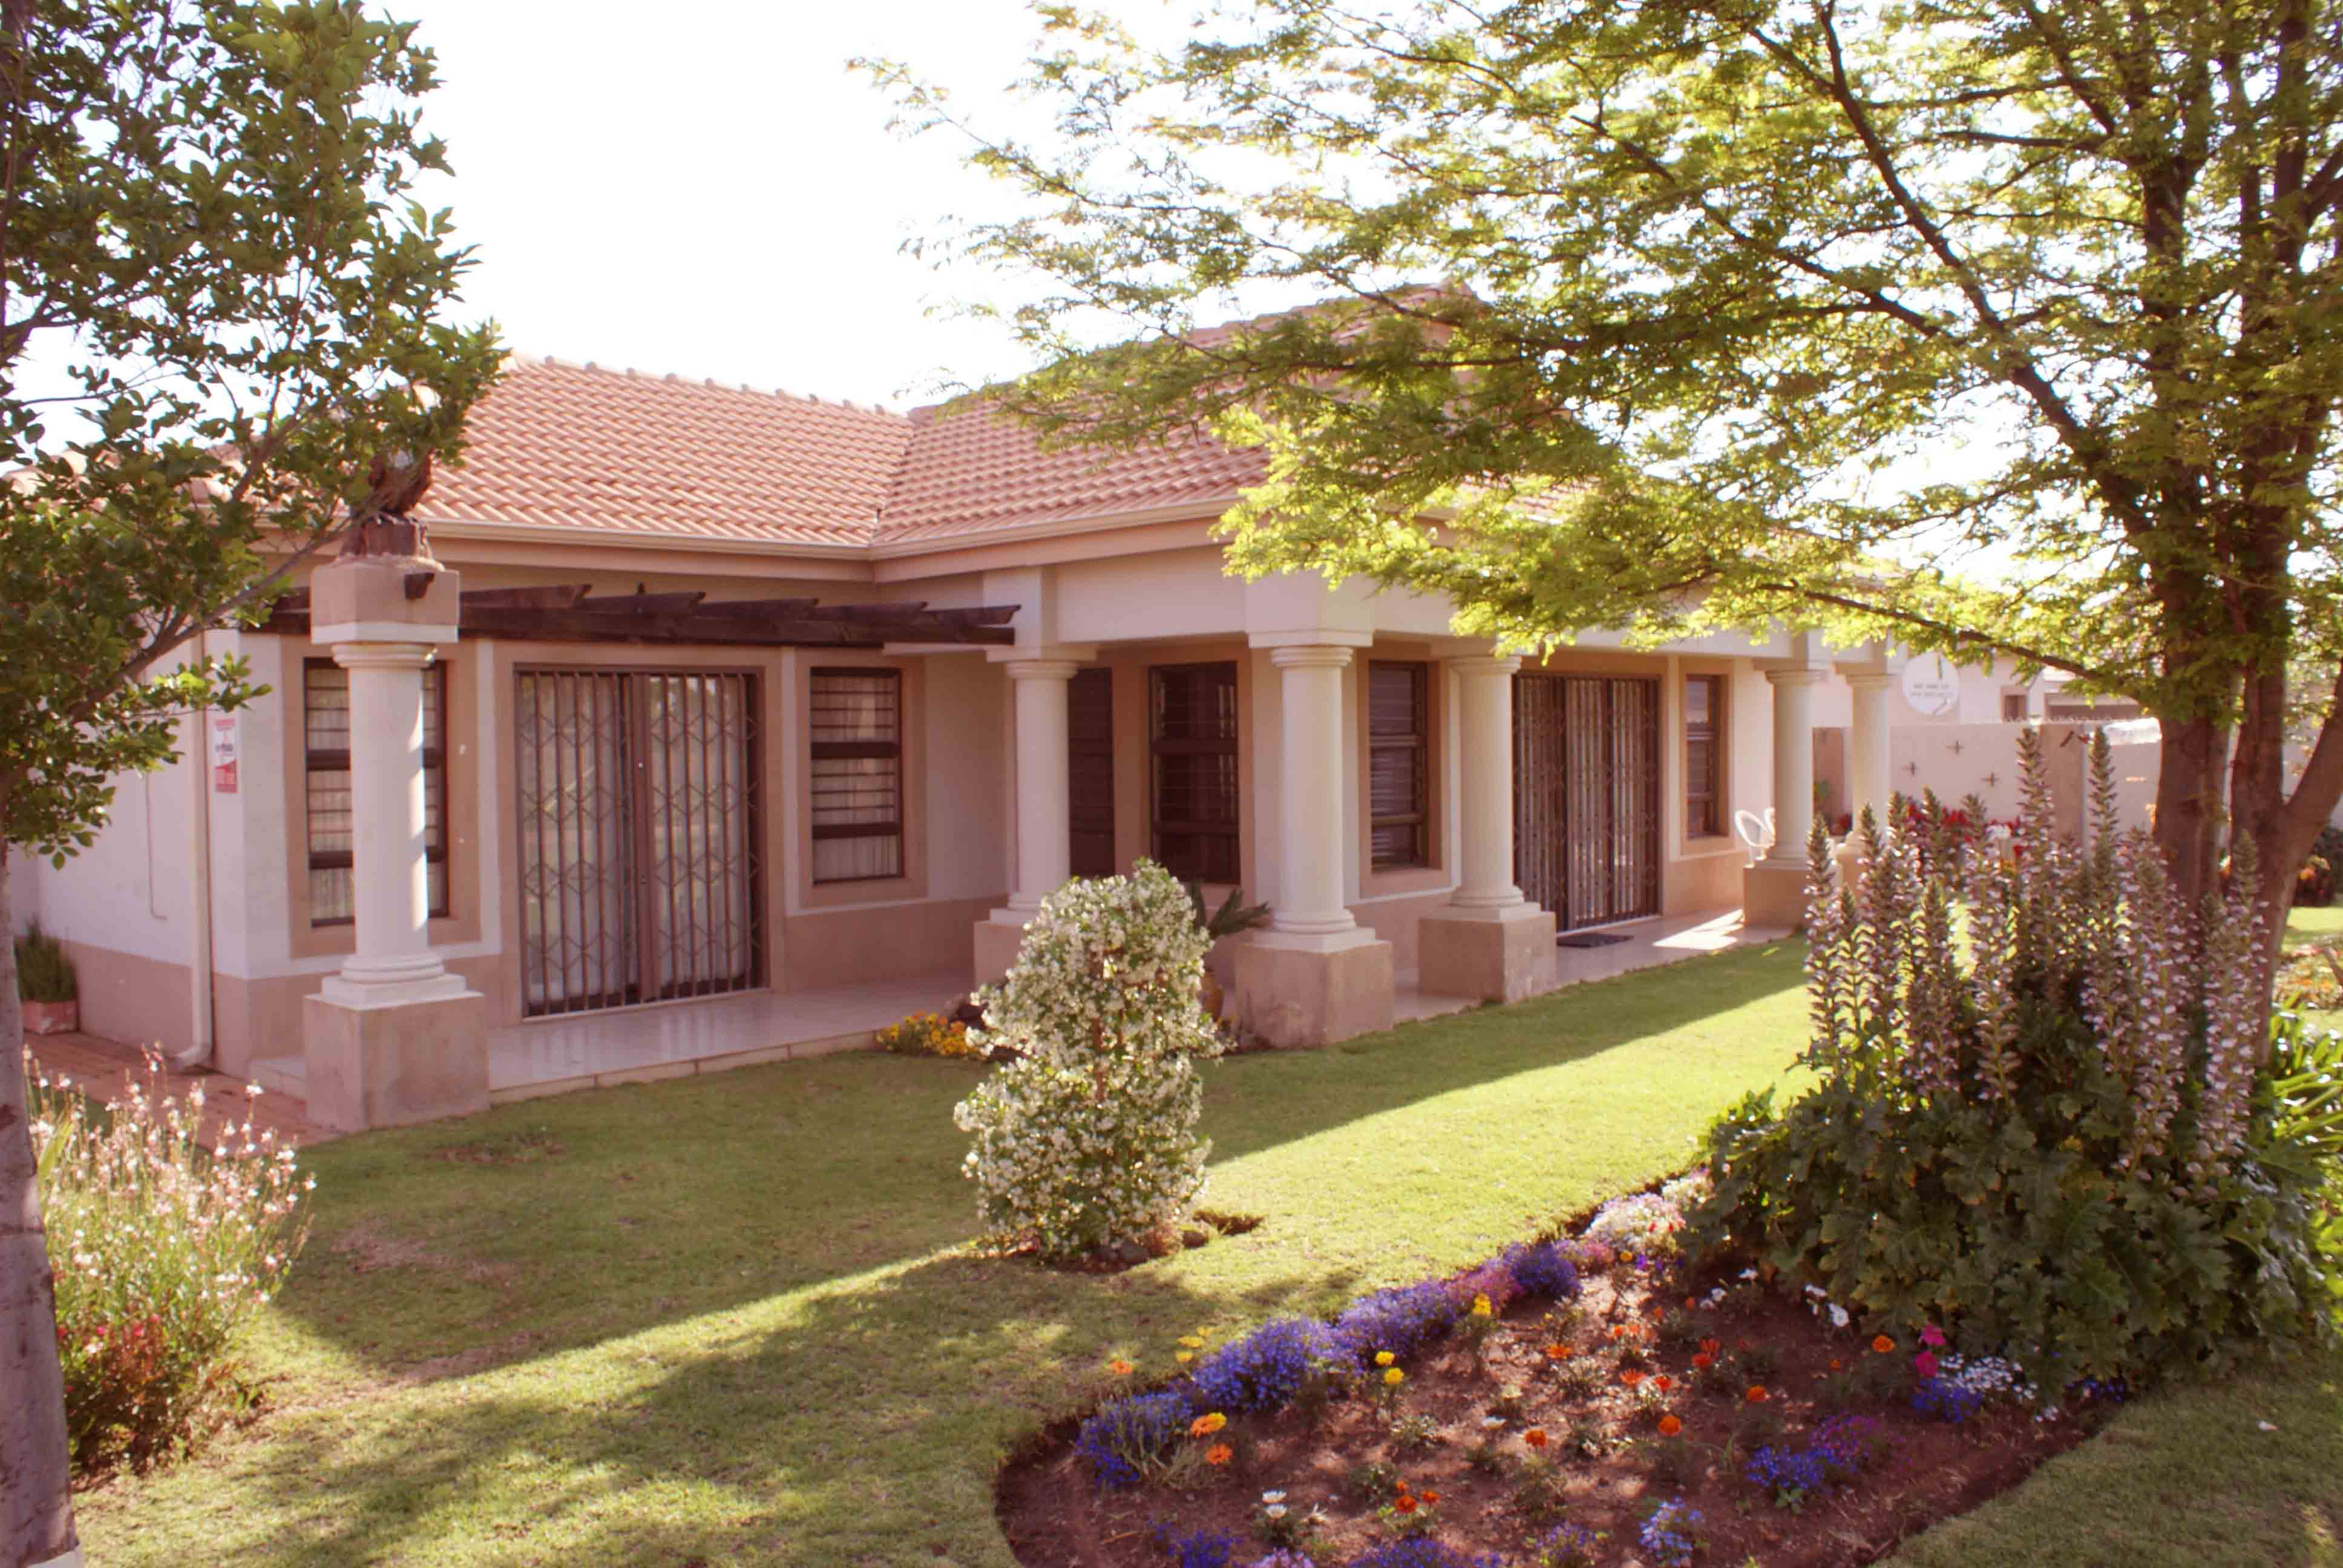 2 BedroomHouse For Sale In Mooivallei Park